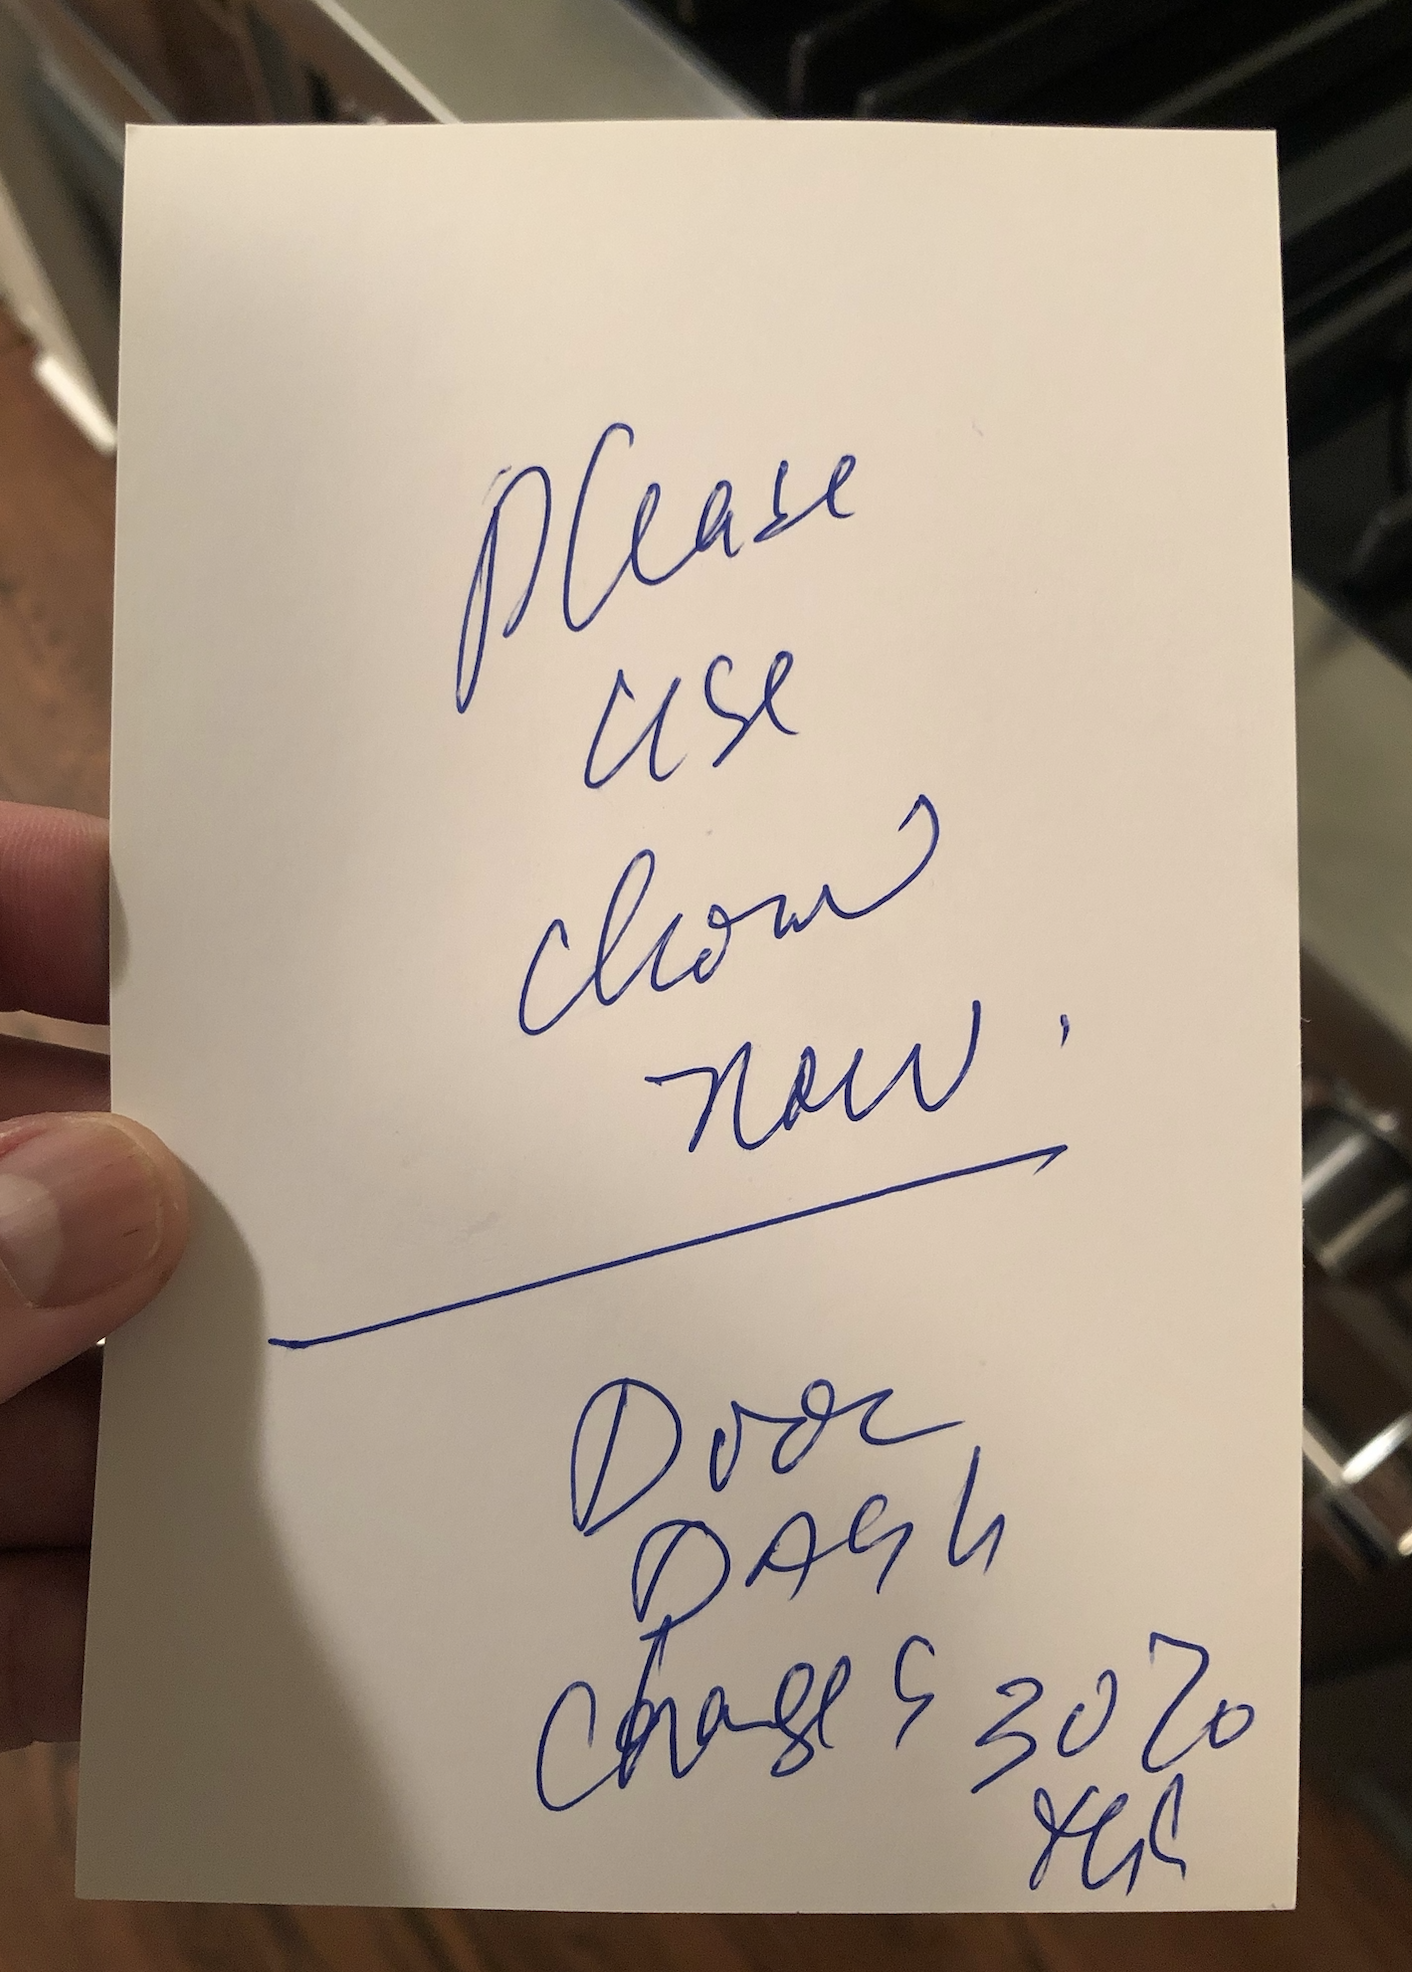 A handwritten note from the owner of New Delhi Palace in Pasadena, California urging his customers to use ChowNow (2020)